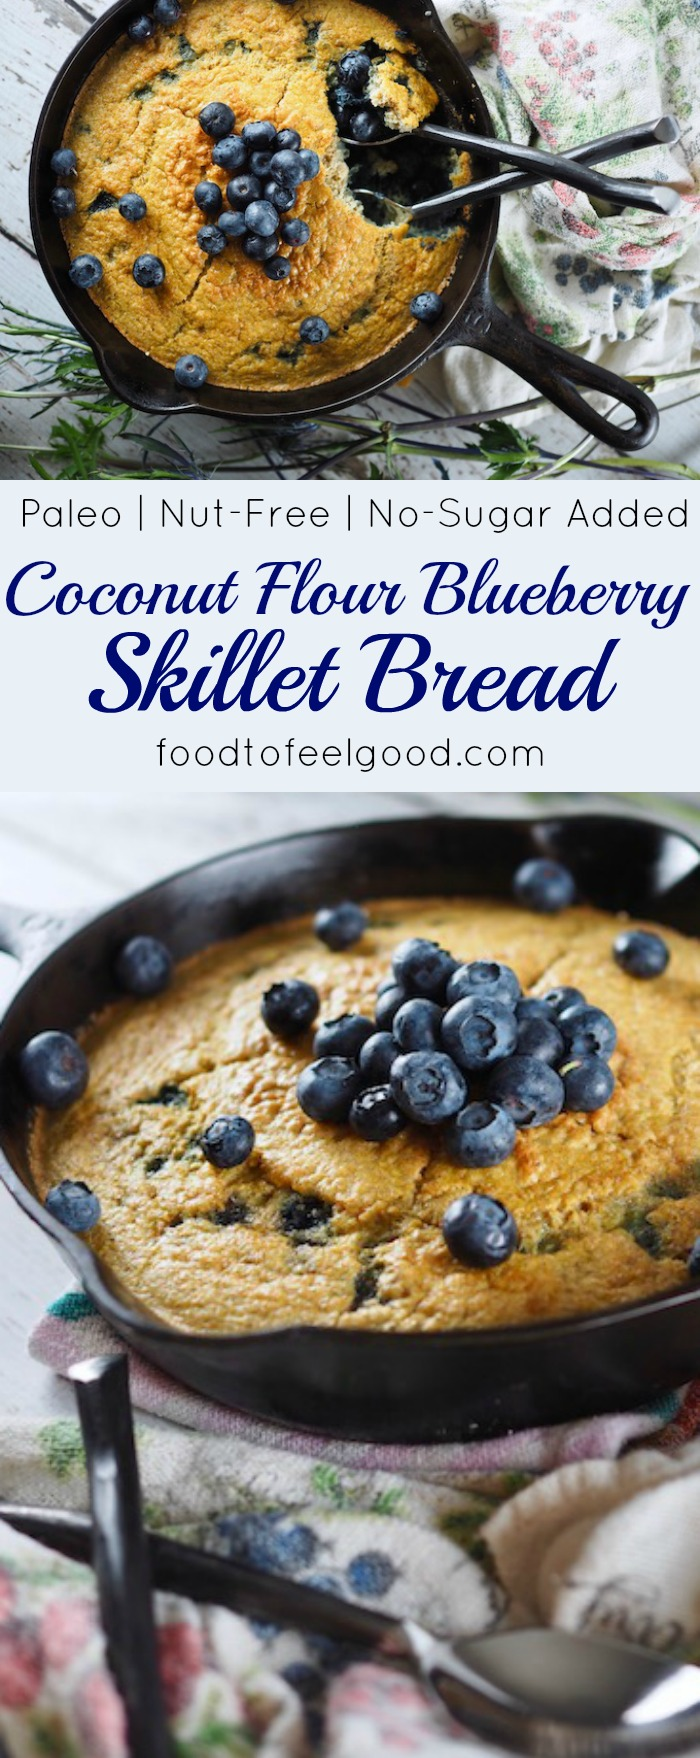 Healthy Paleo Coconut Flour Blueberry Skillet Bread | Keto-friendly, grain-free, gluten-free, dairy-free, sugar-free, yeast-free, high-protein, and low-carb! Super yummy and comforting on a cold morning, plus easy to make. #healthyrecipes #paleo #whole30